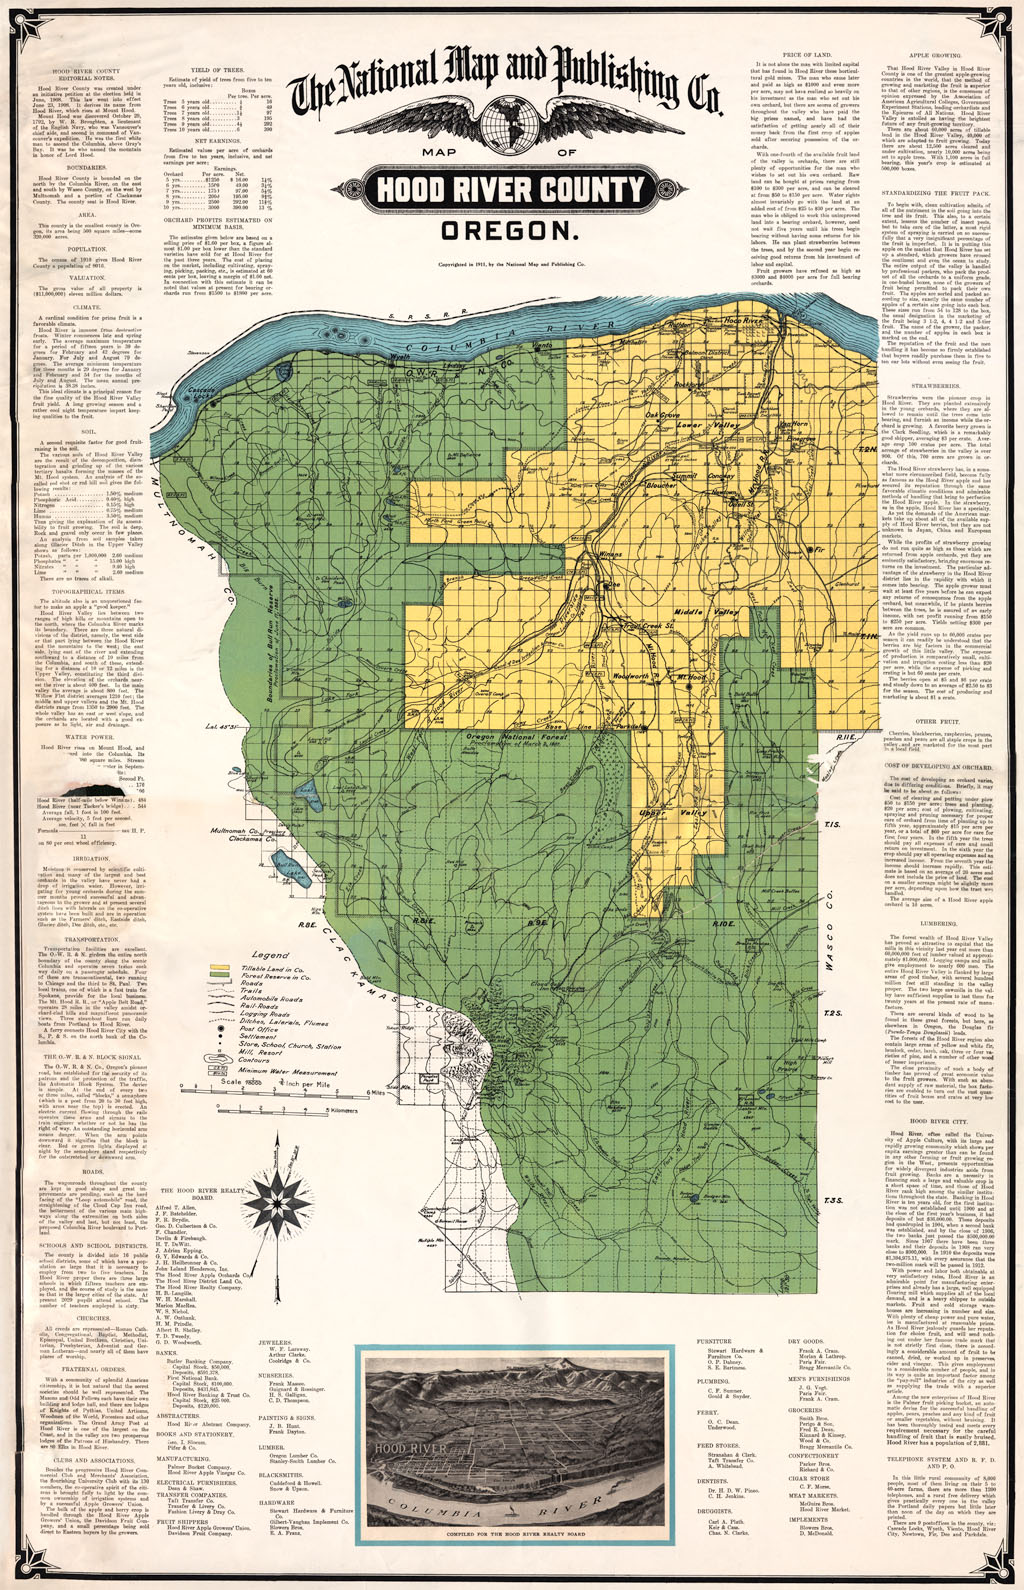 Hood River County Map, 1911